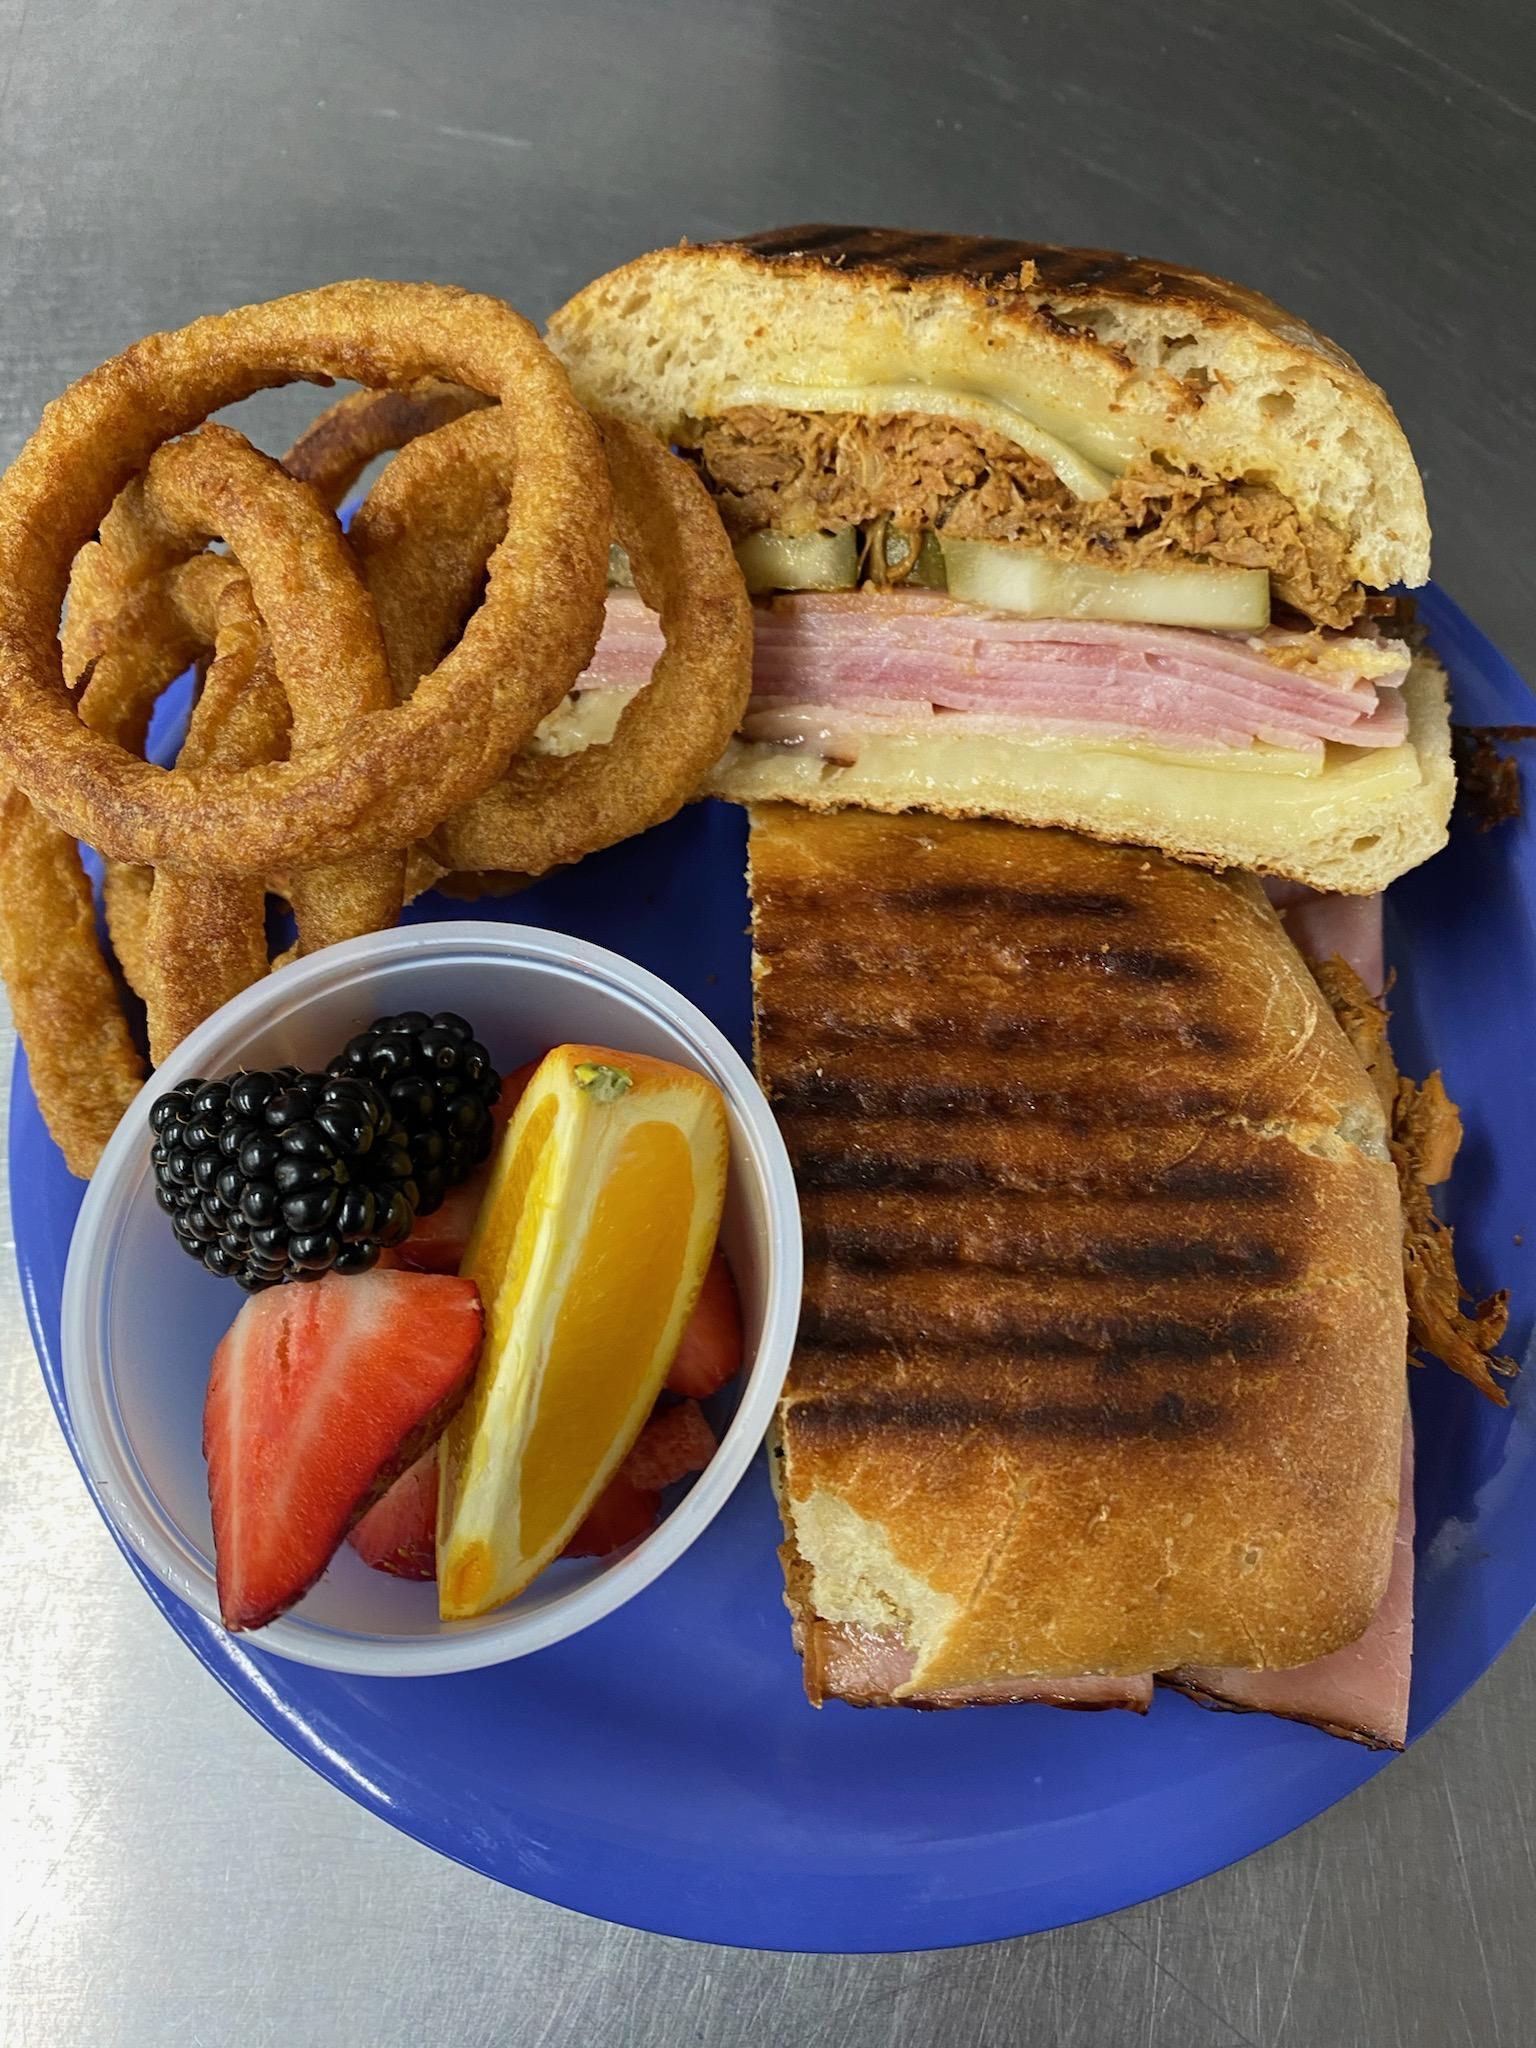 cuban sandwich with onion rings and fruit